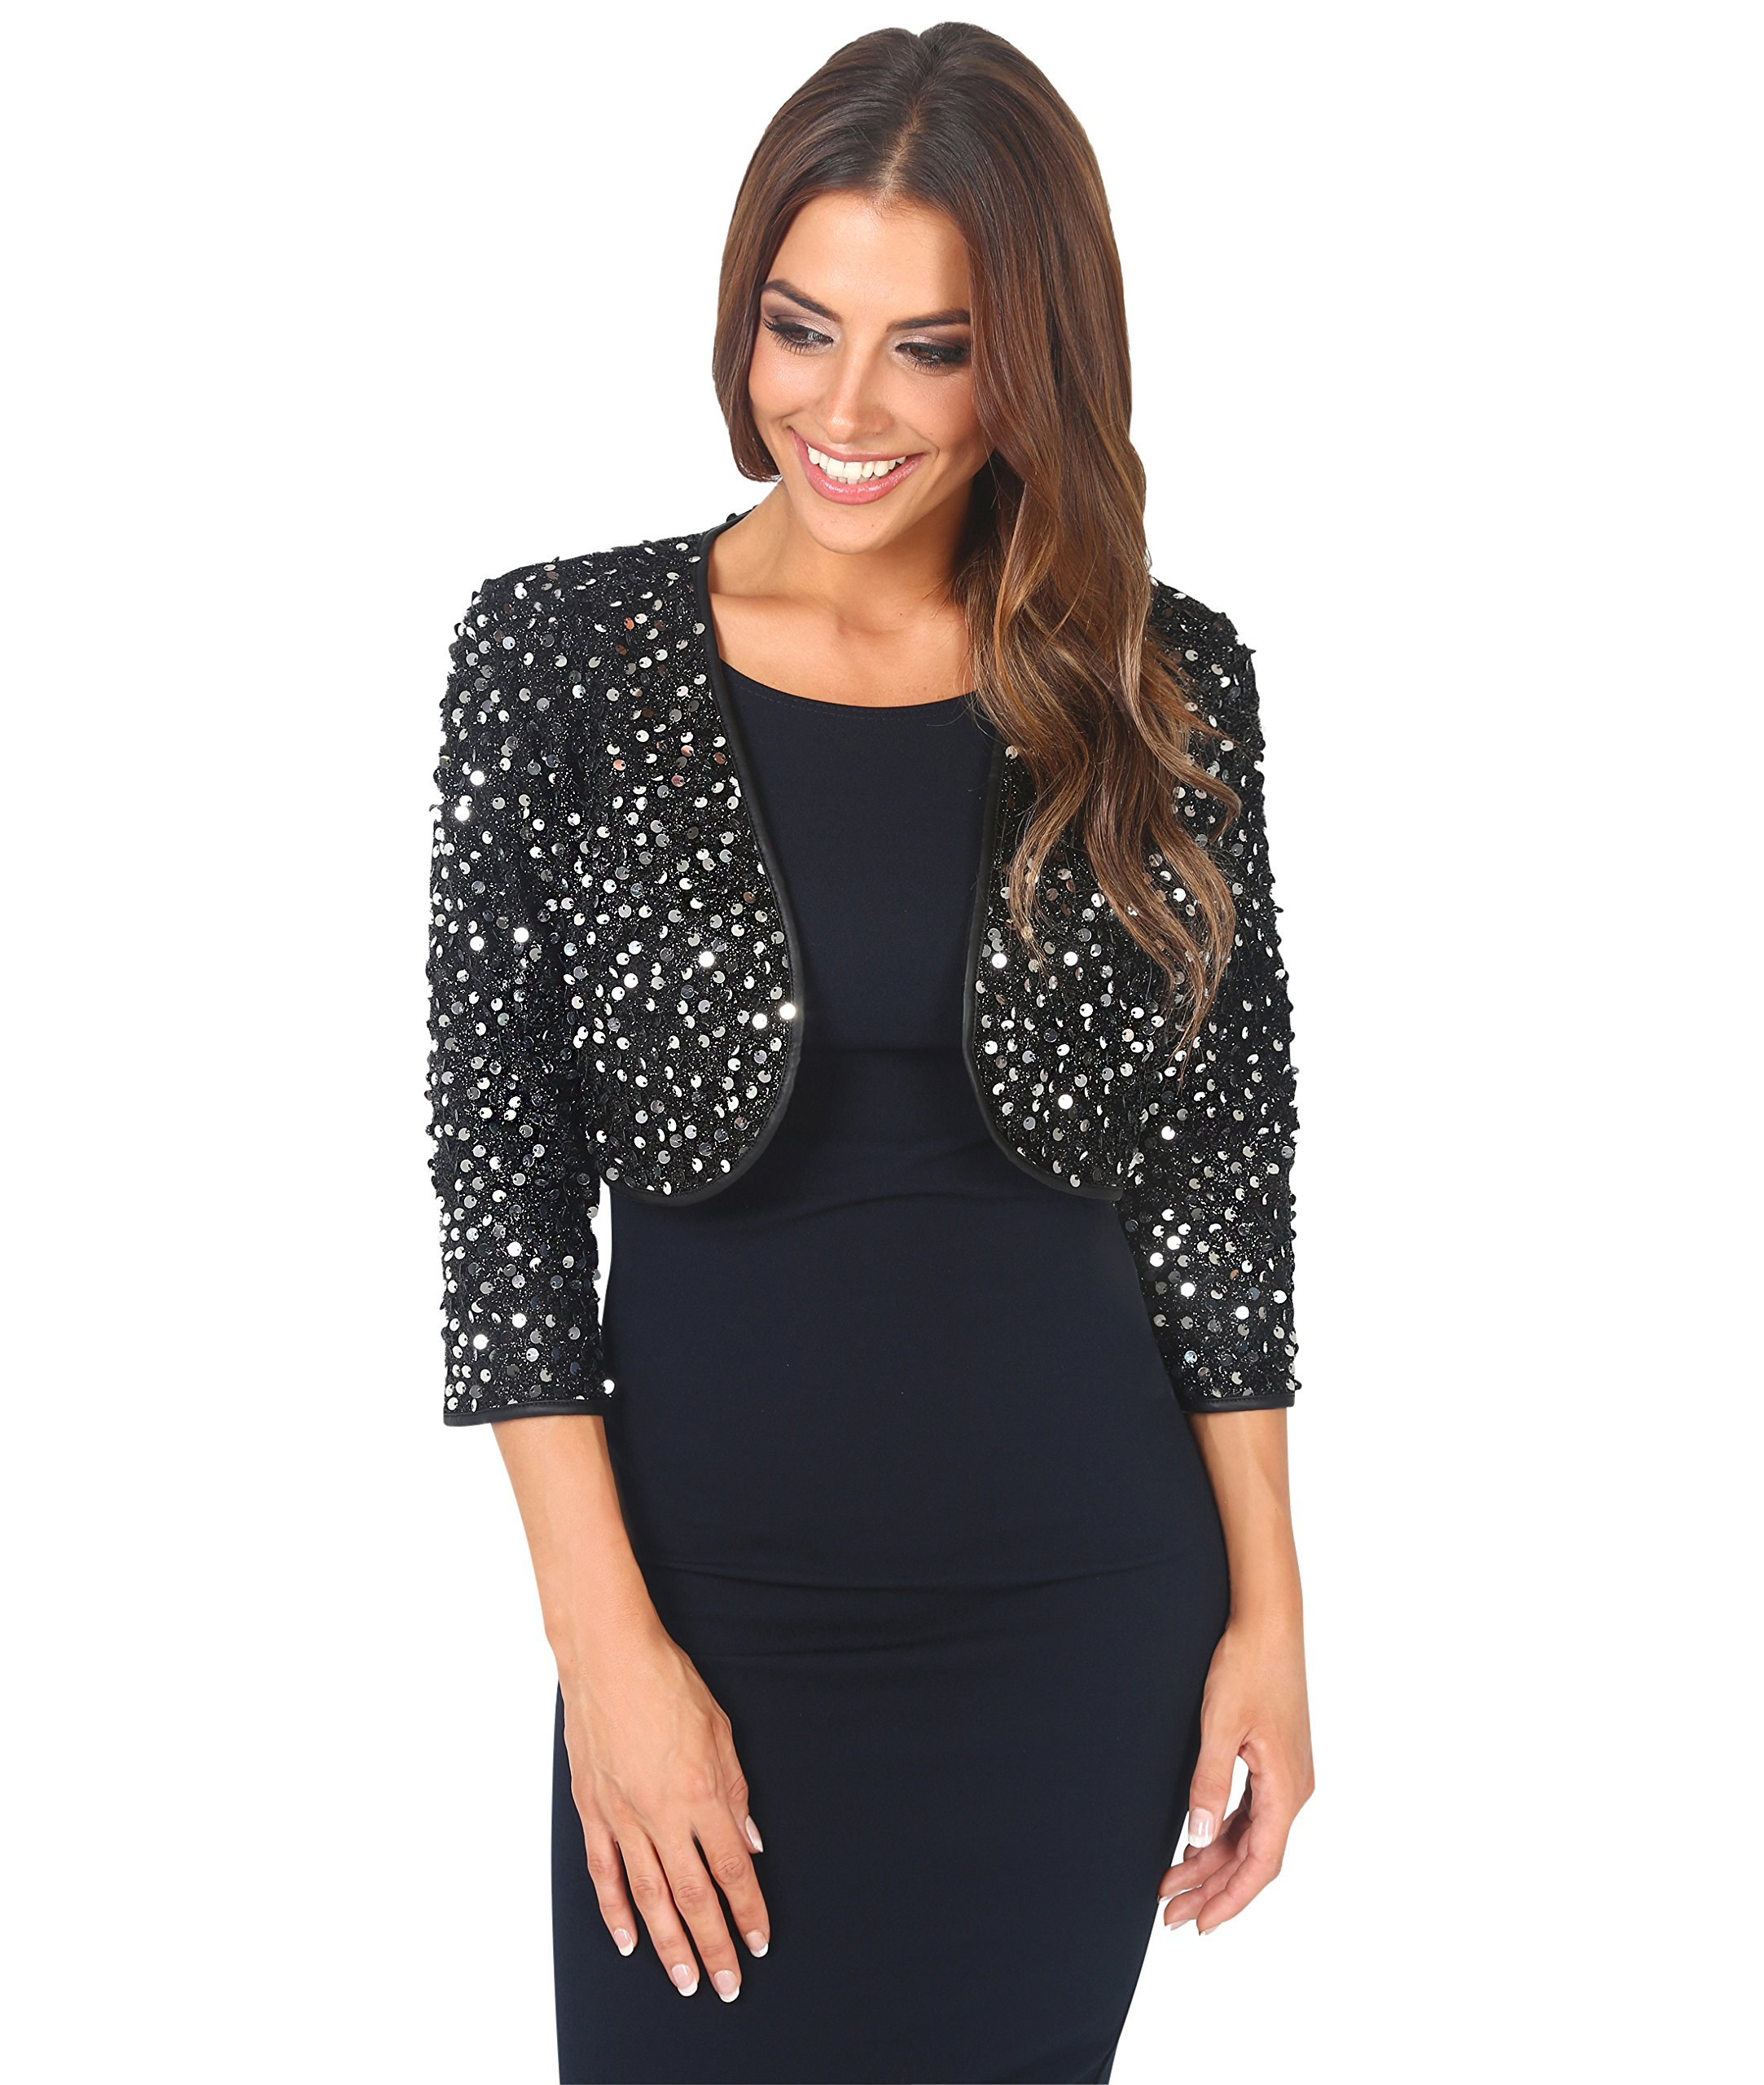 KRISP All Over Sequin Evening Shrug (Silver, XX-Large),[7363-SIL-XXL]